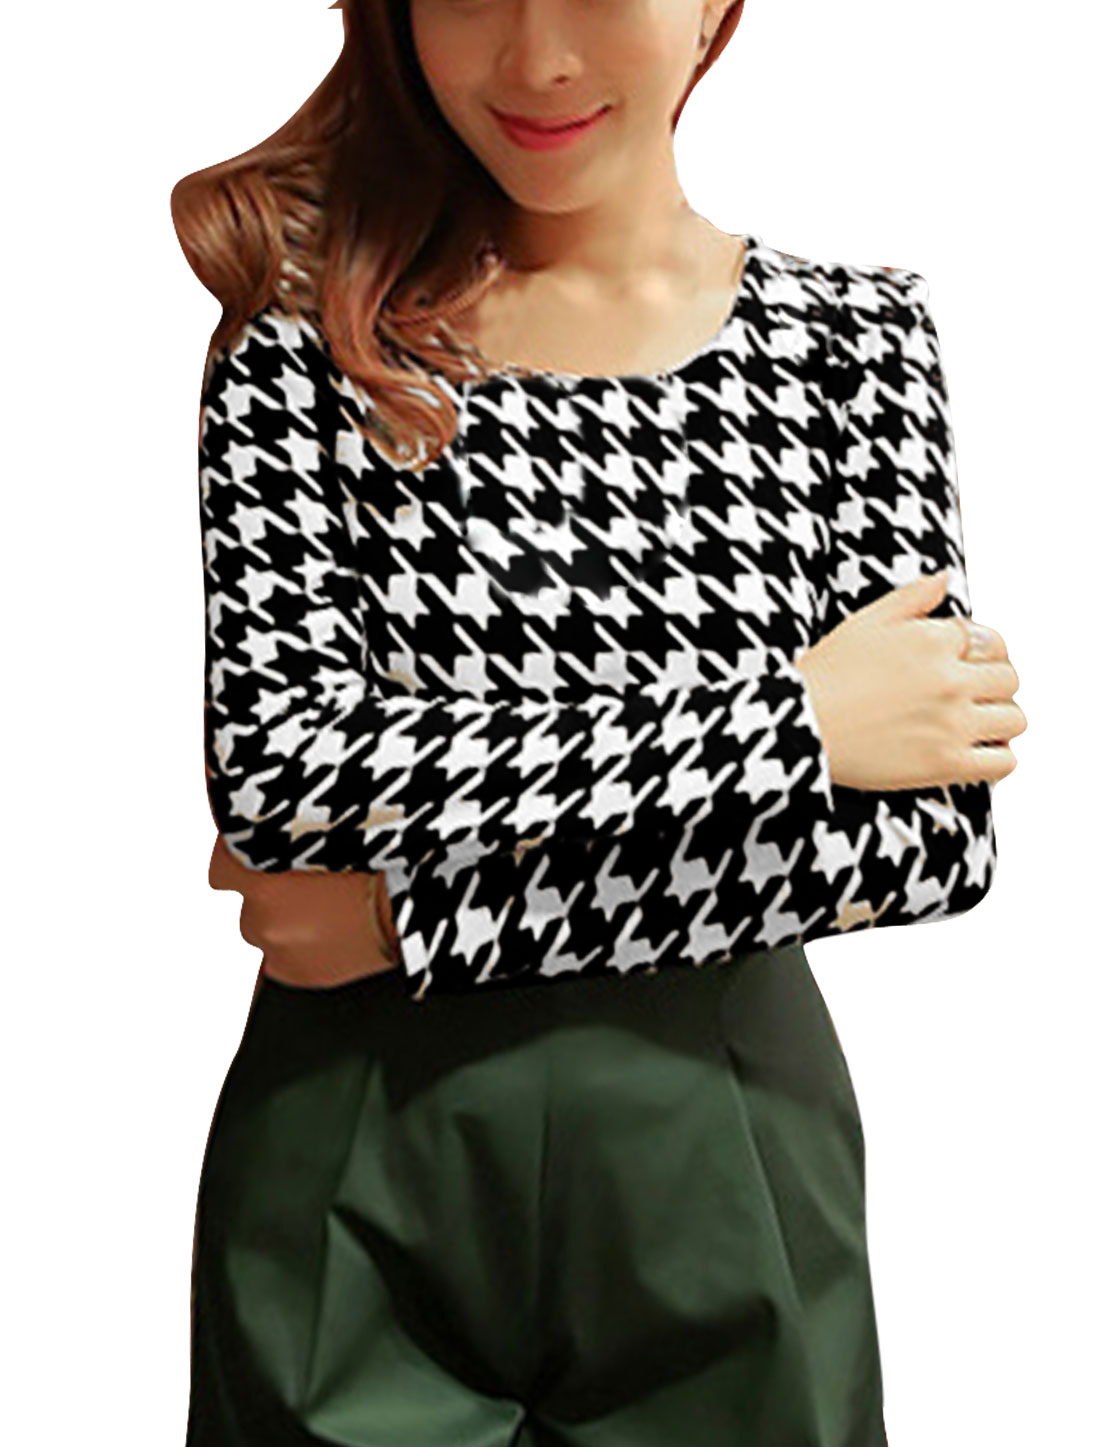 Bodycon Black White Long Sleeved Houndstooth Pattern Knit Shirt S